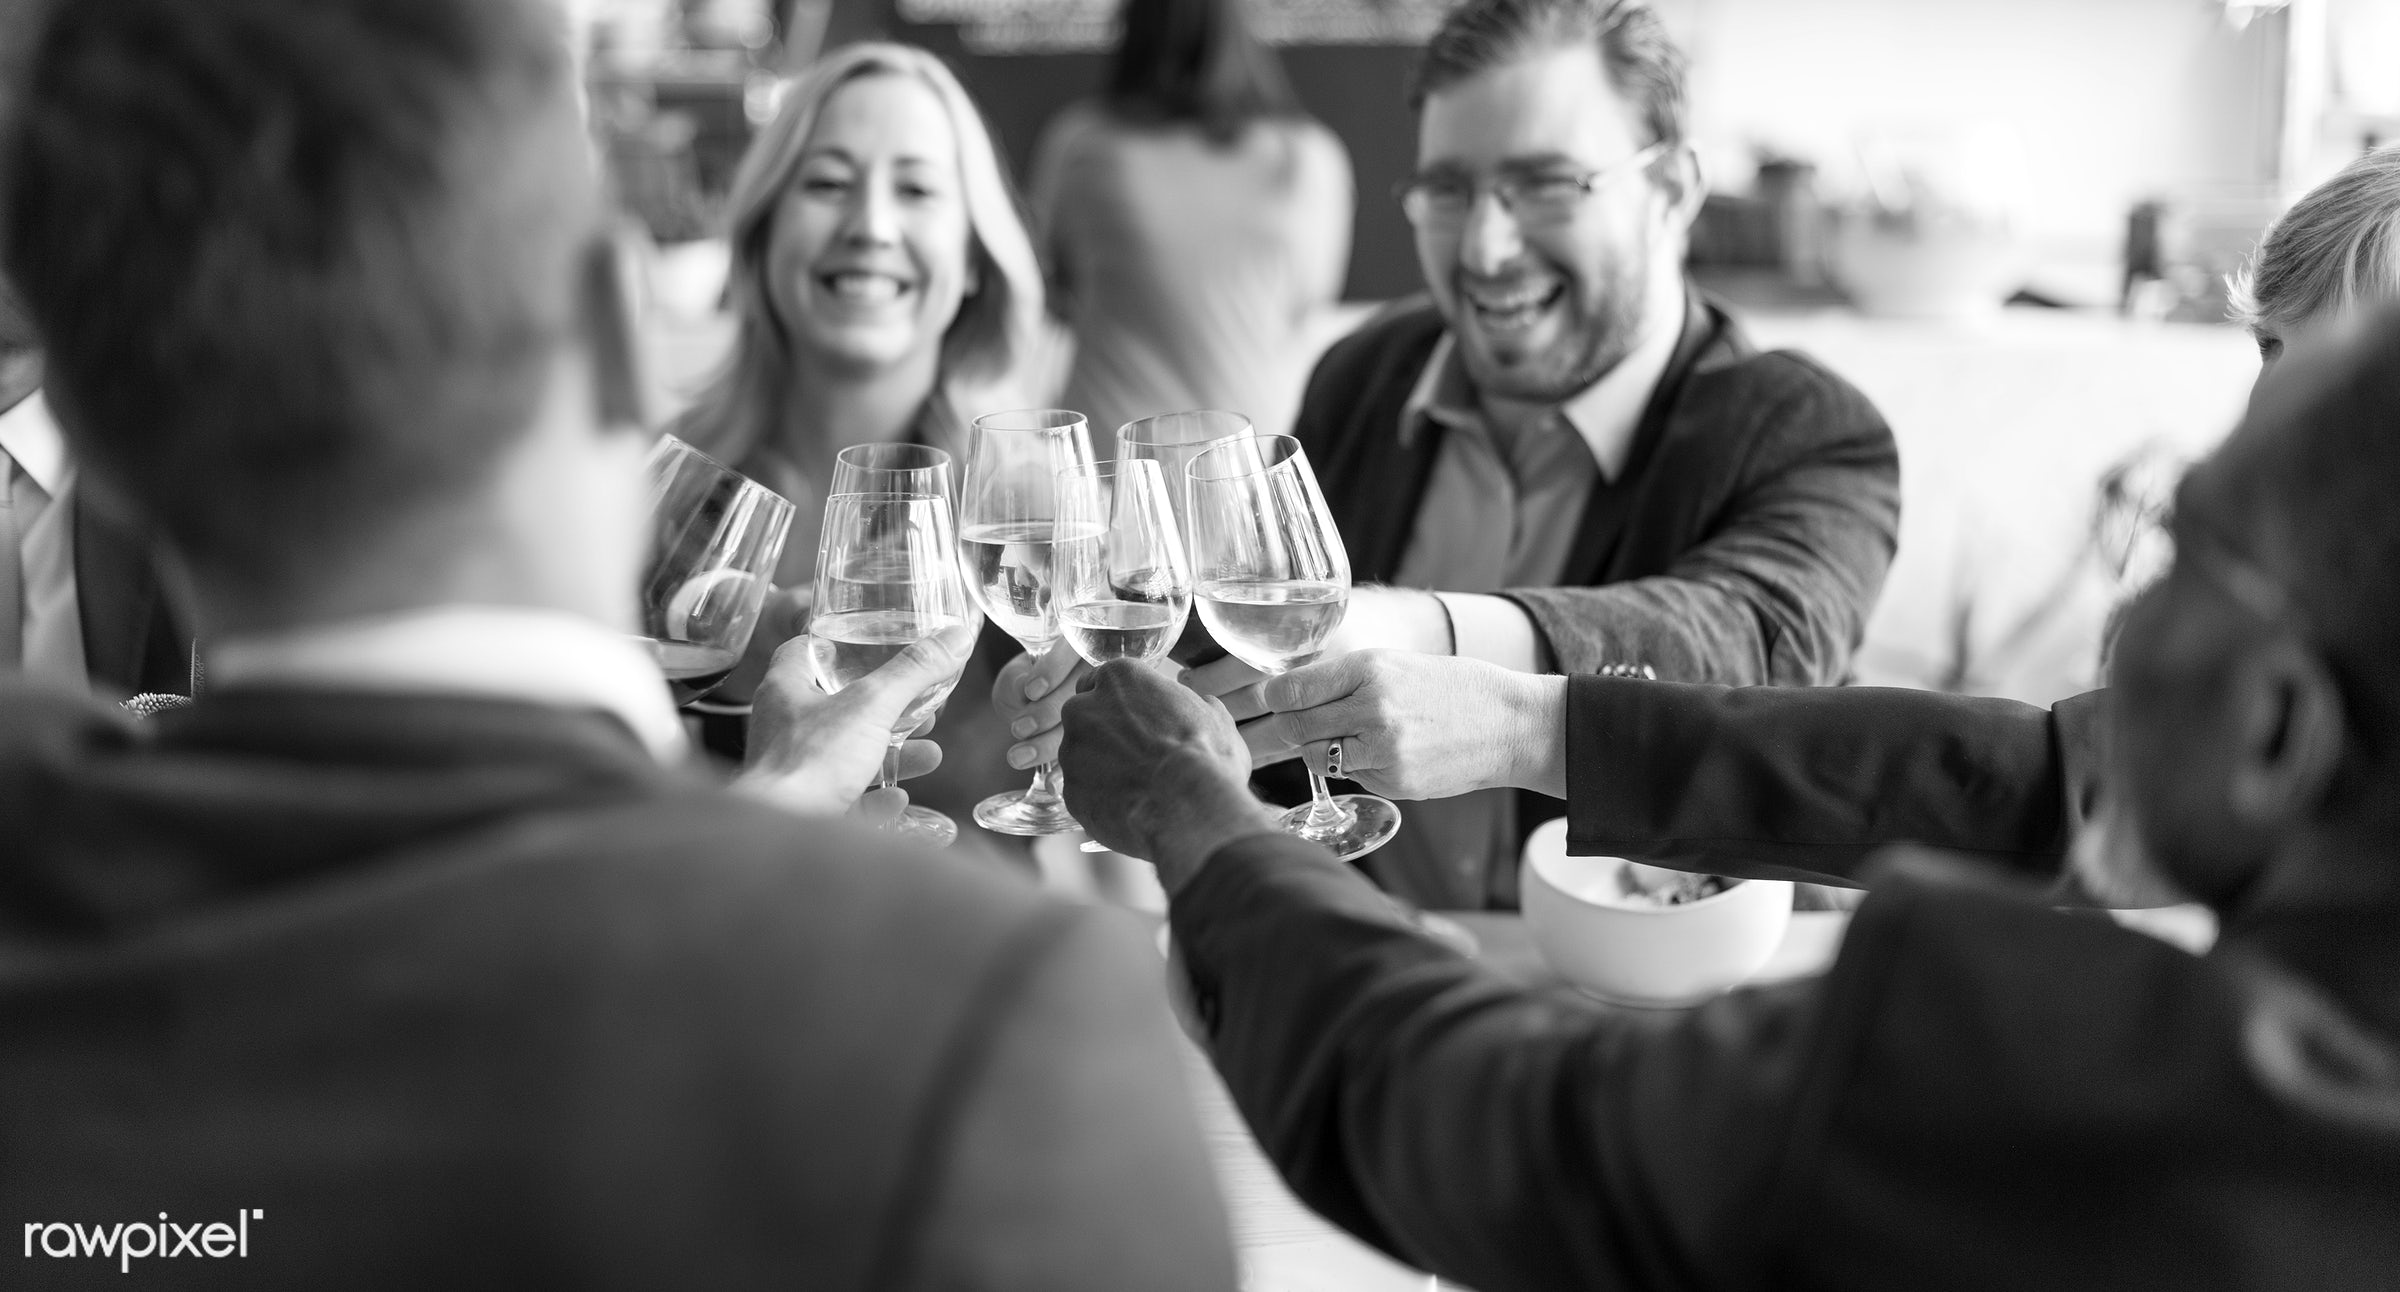 People Cheers Celebration Toast Happiness Togetherness Concept - african american, african descent, asian, black, caucasian...